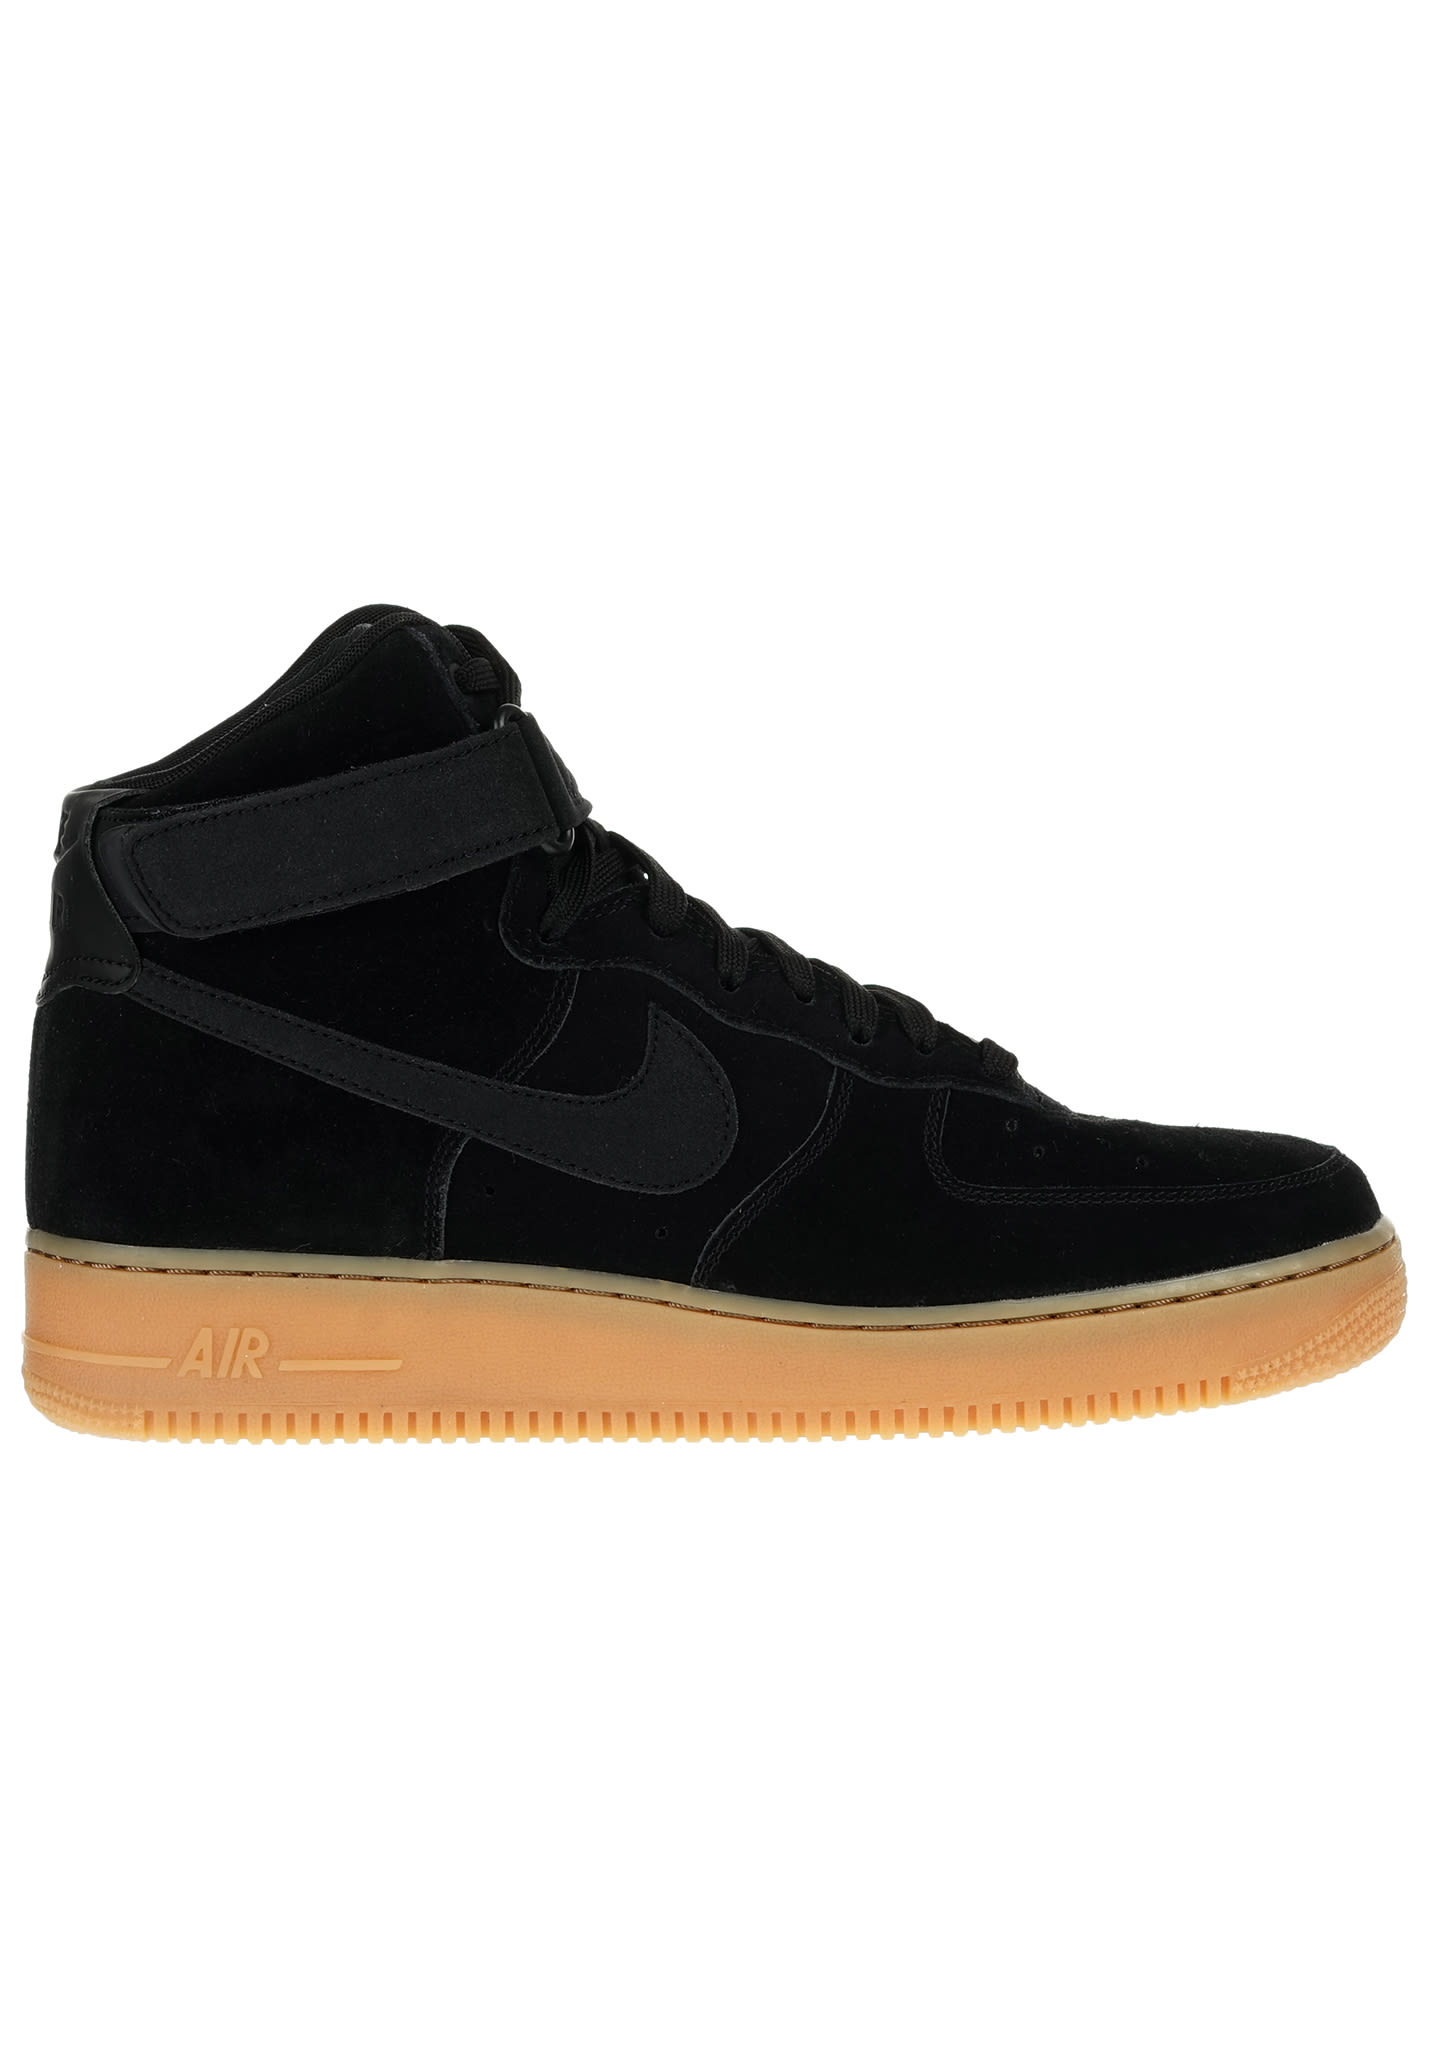 wholesale dealer b7458 1d7d4 NIKE SPORTSWEAR Air Force 1 High 07 Lv8 Suede - Sneaker für Herren -  Schwarz - Planet Sports